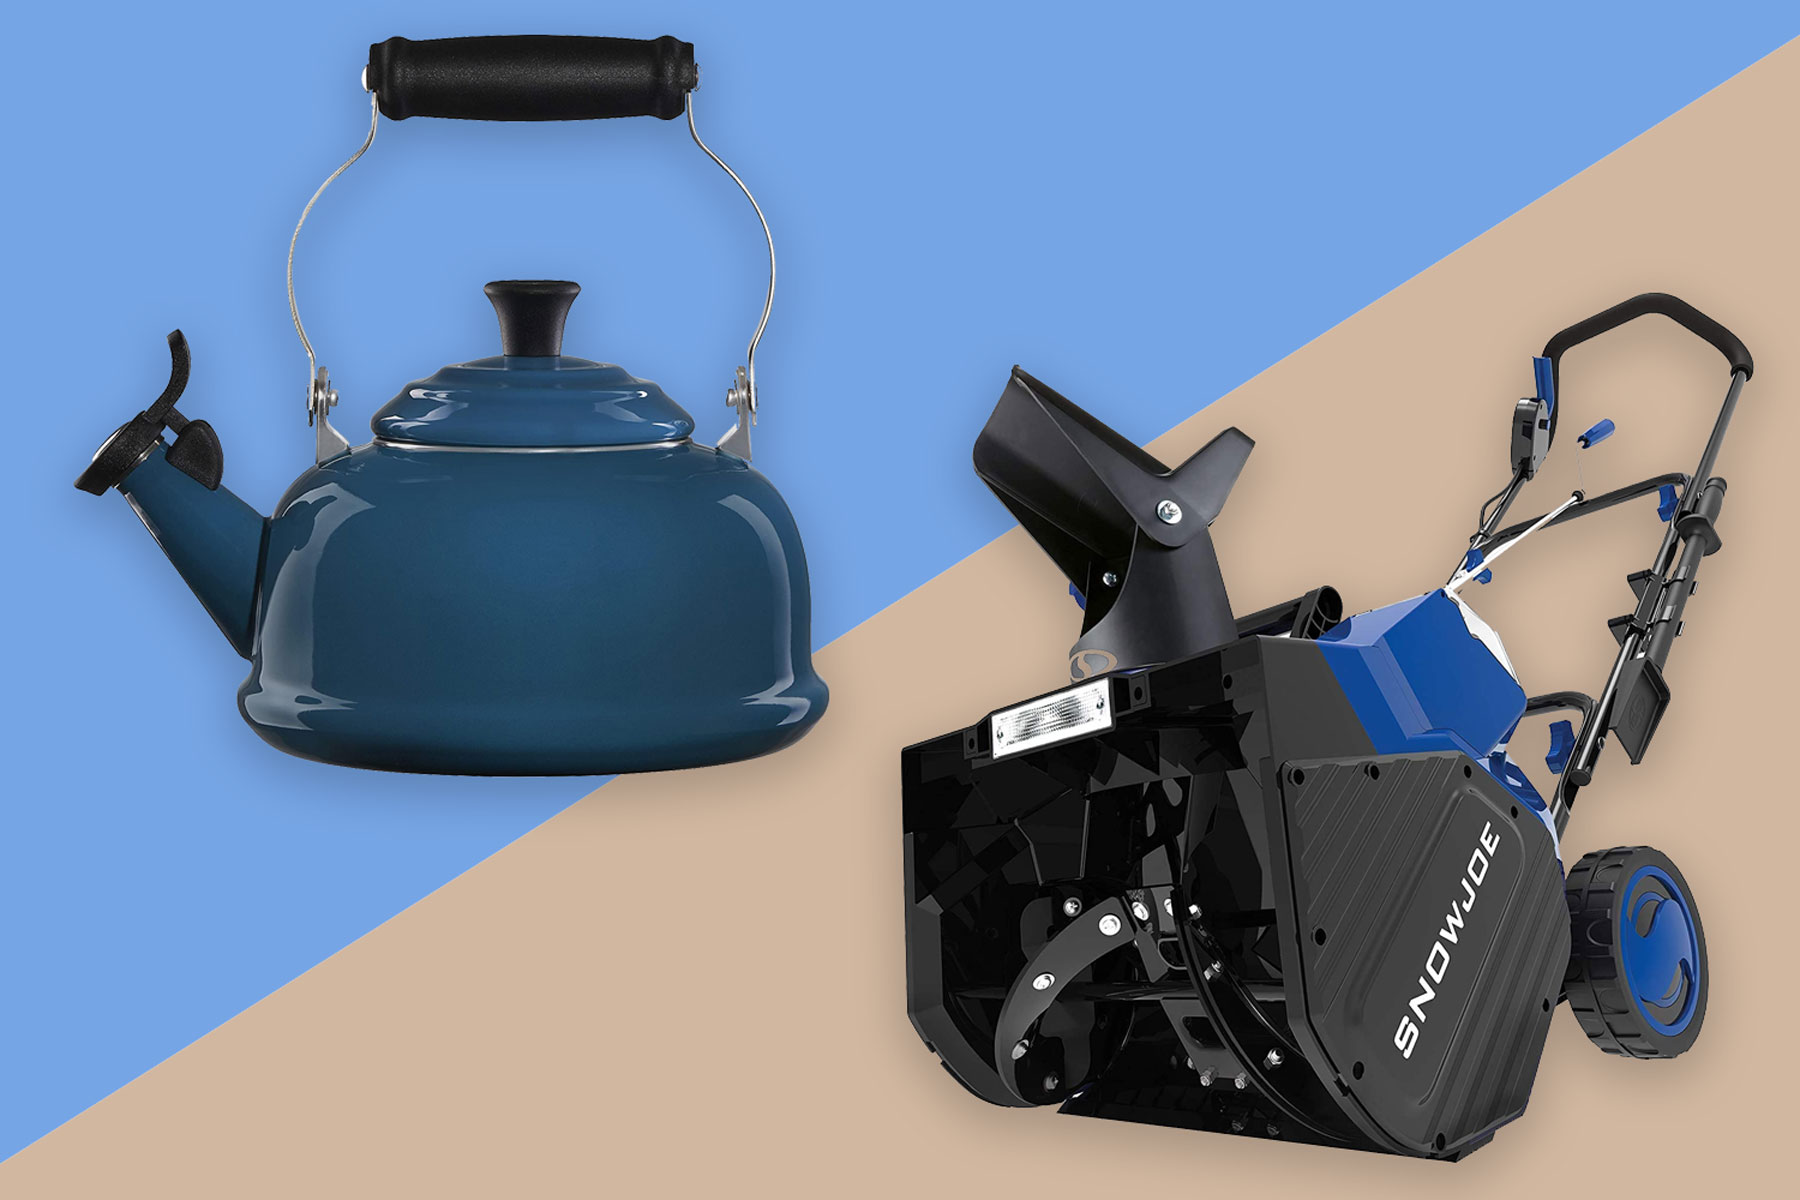 Tea kettle and snow blower